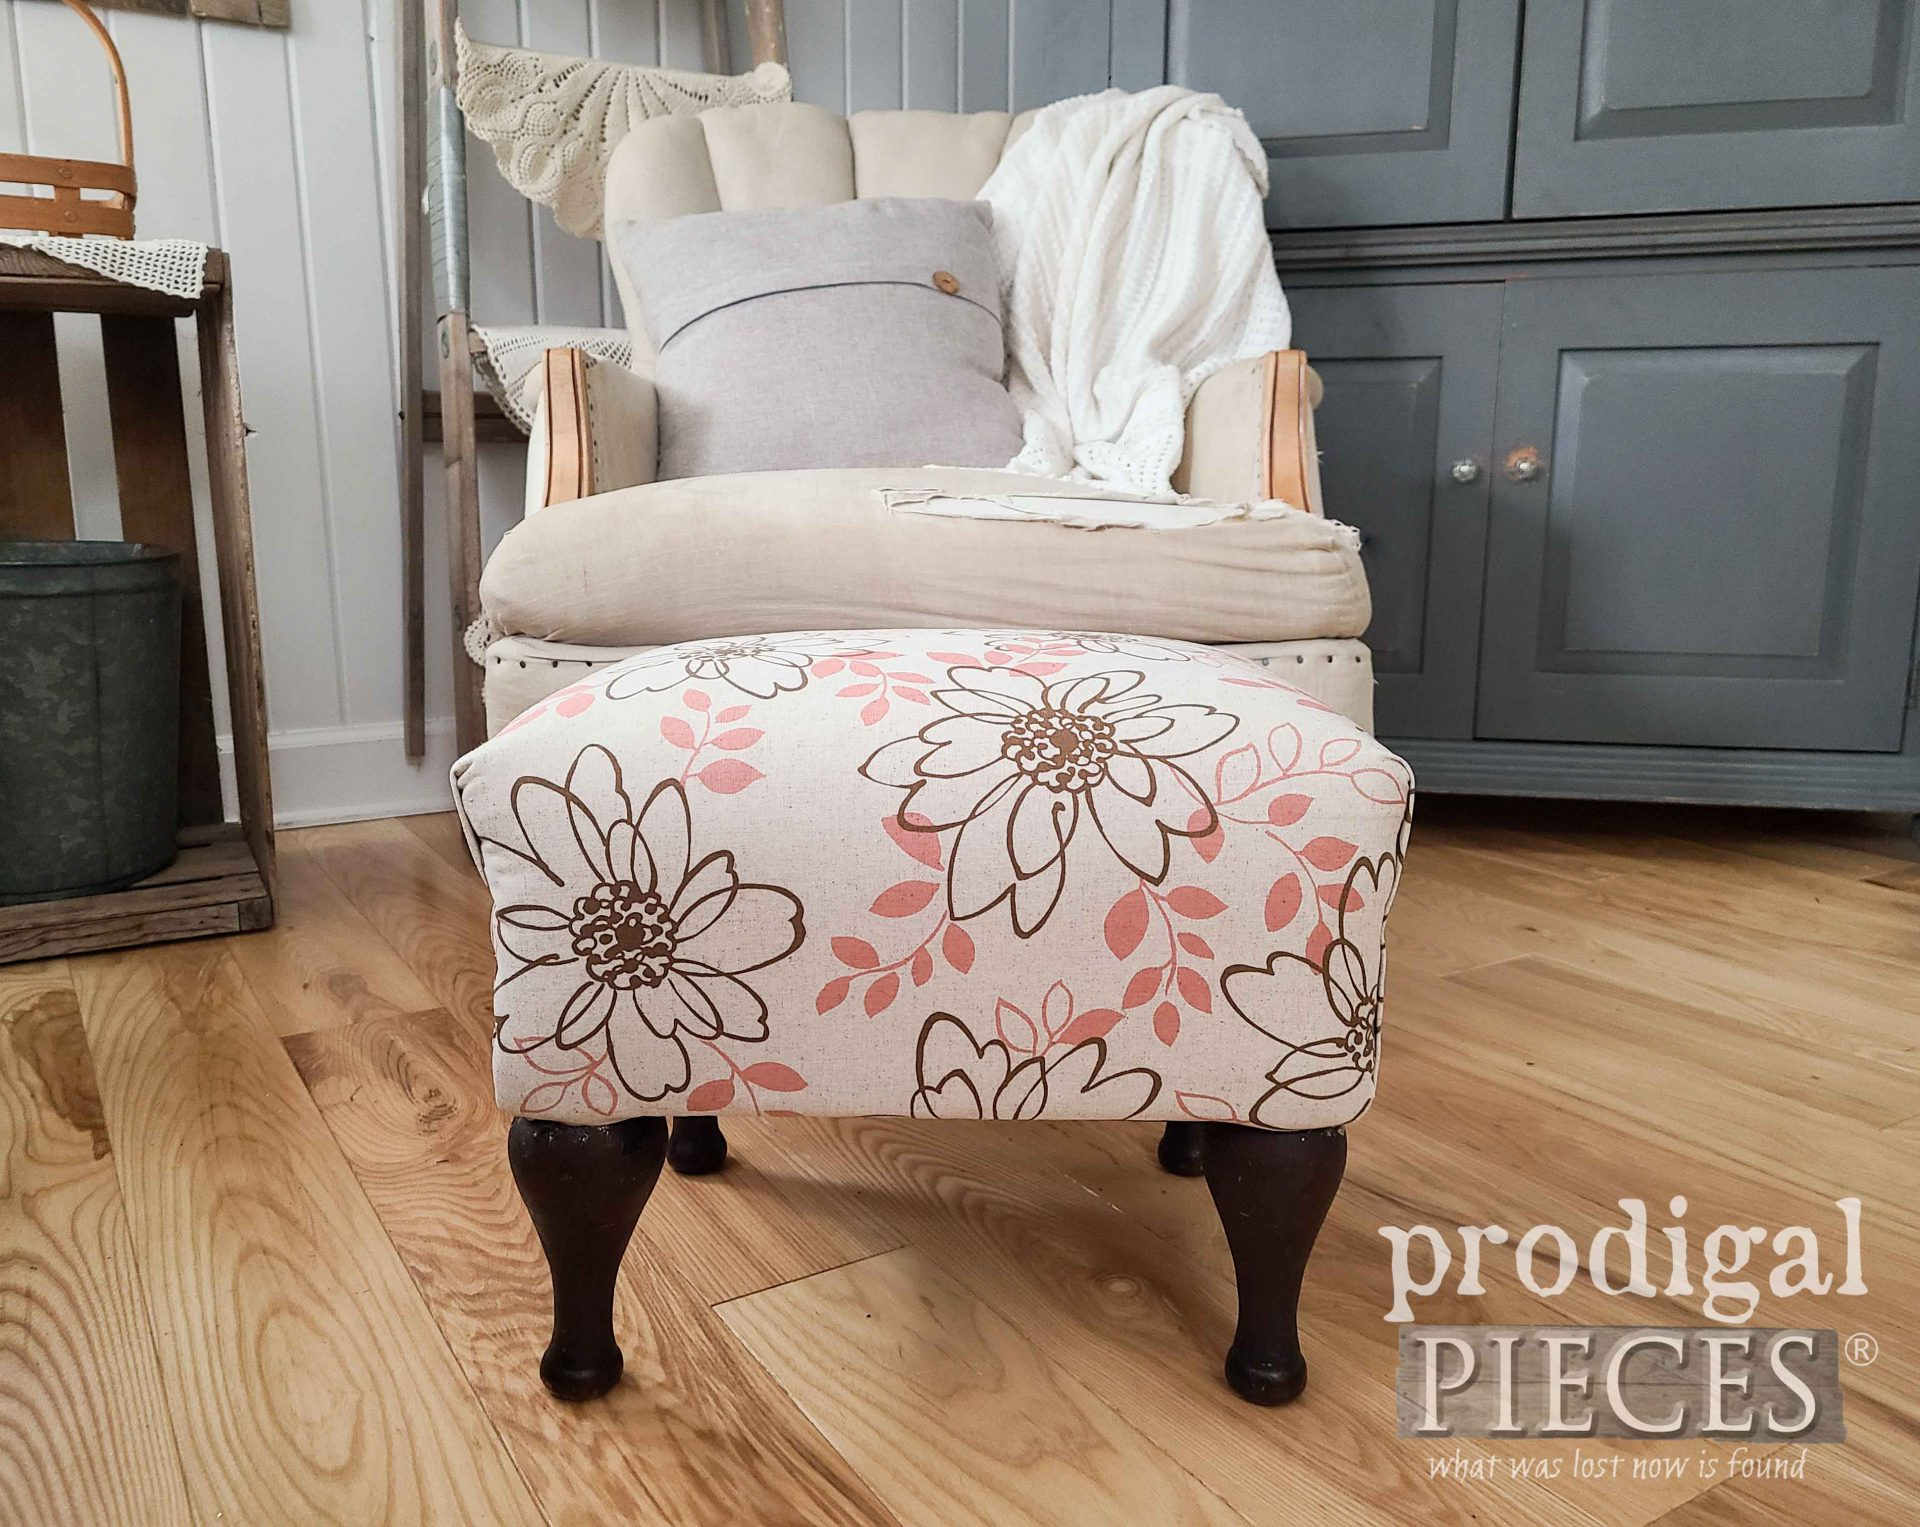 Vintage Vinyl Footstool with Modern Makeover by Larissa of Prodigal Pieces | prodigalpieces.com #prodigalpieces #furniture #vintage #upholstery